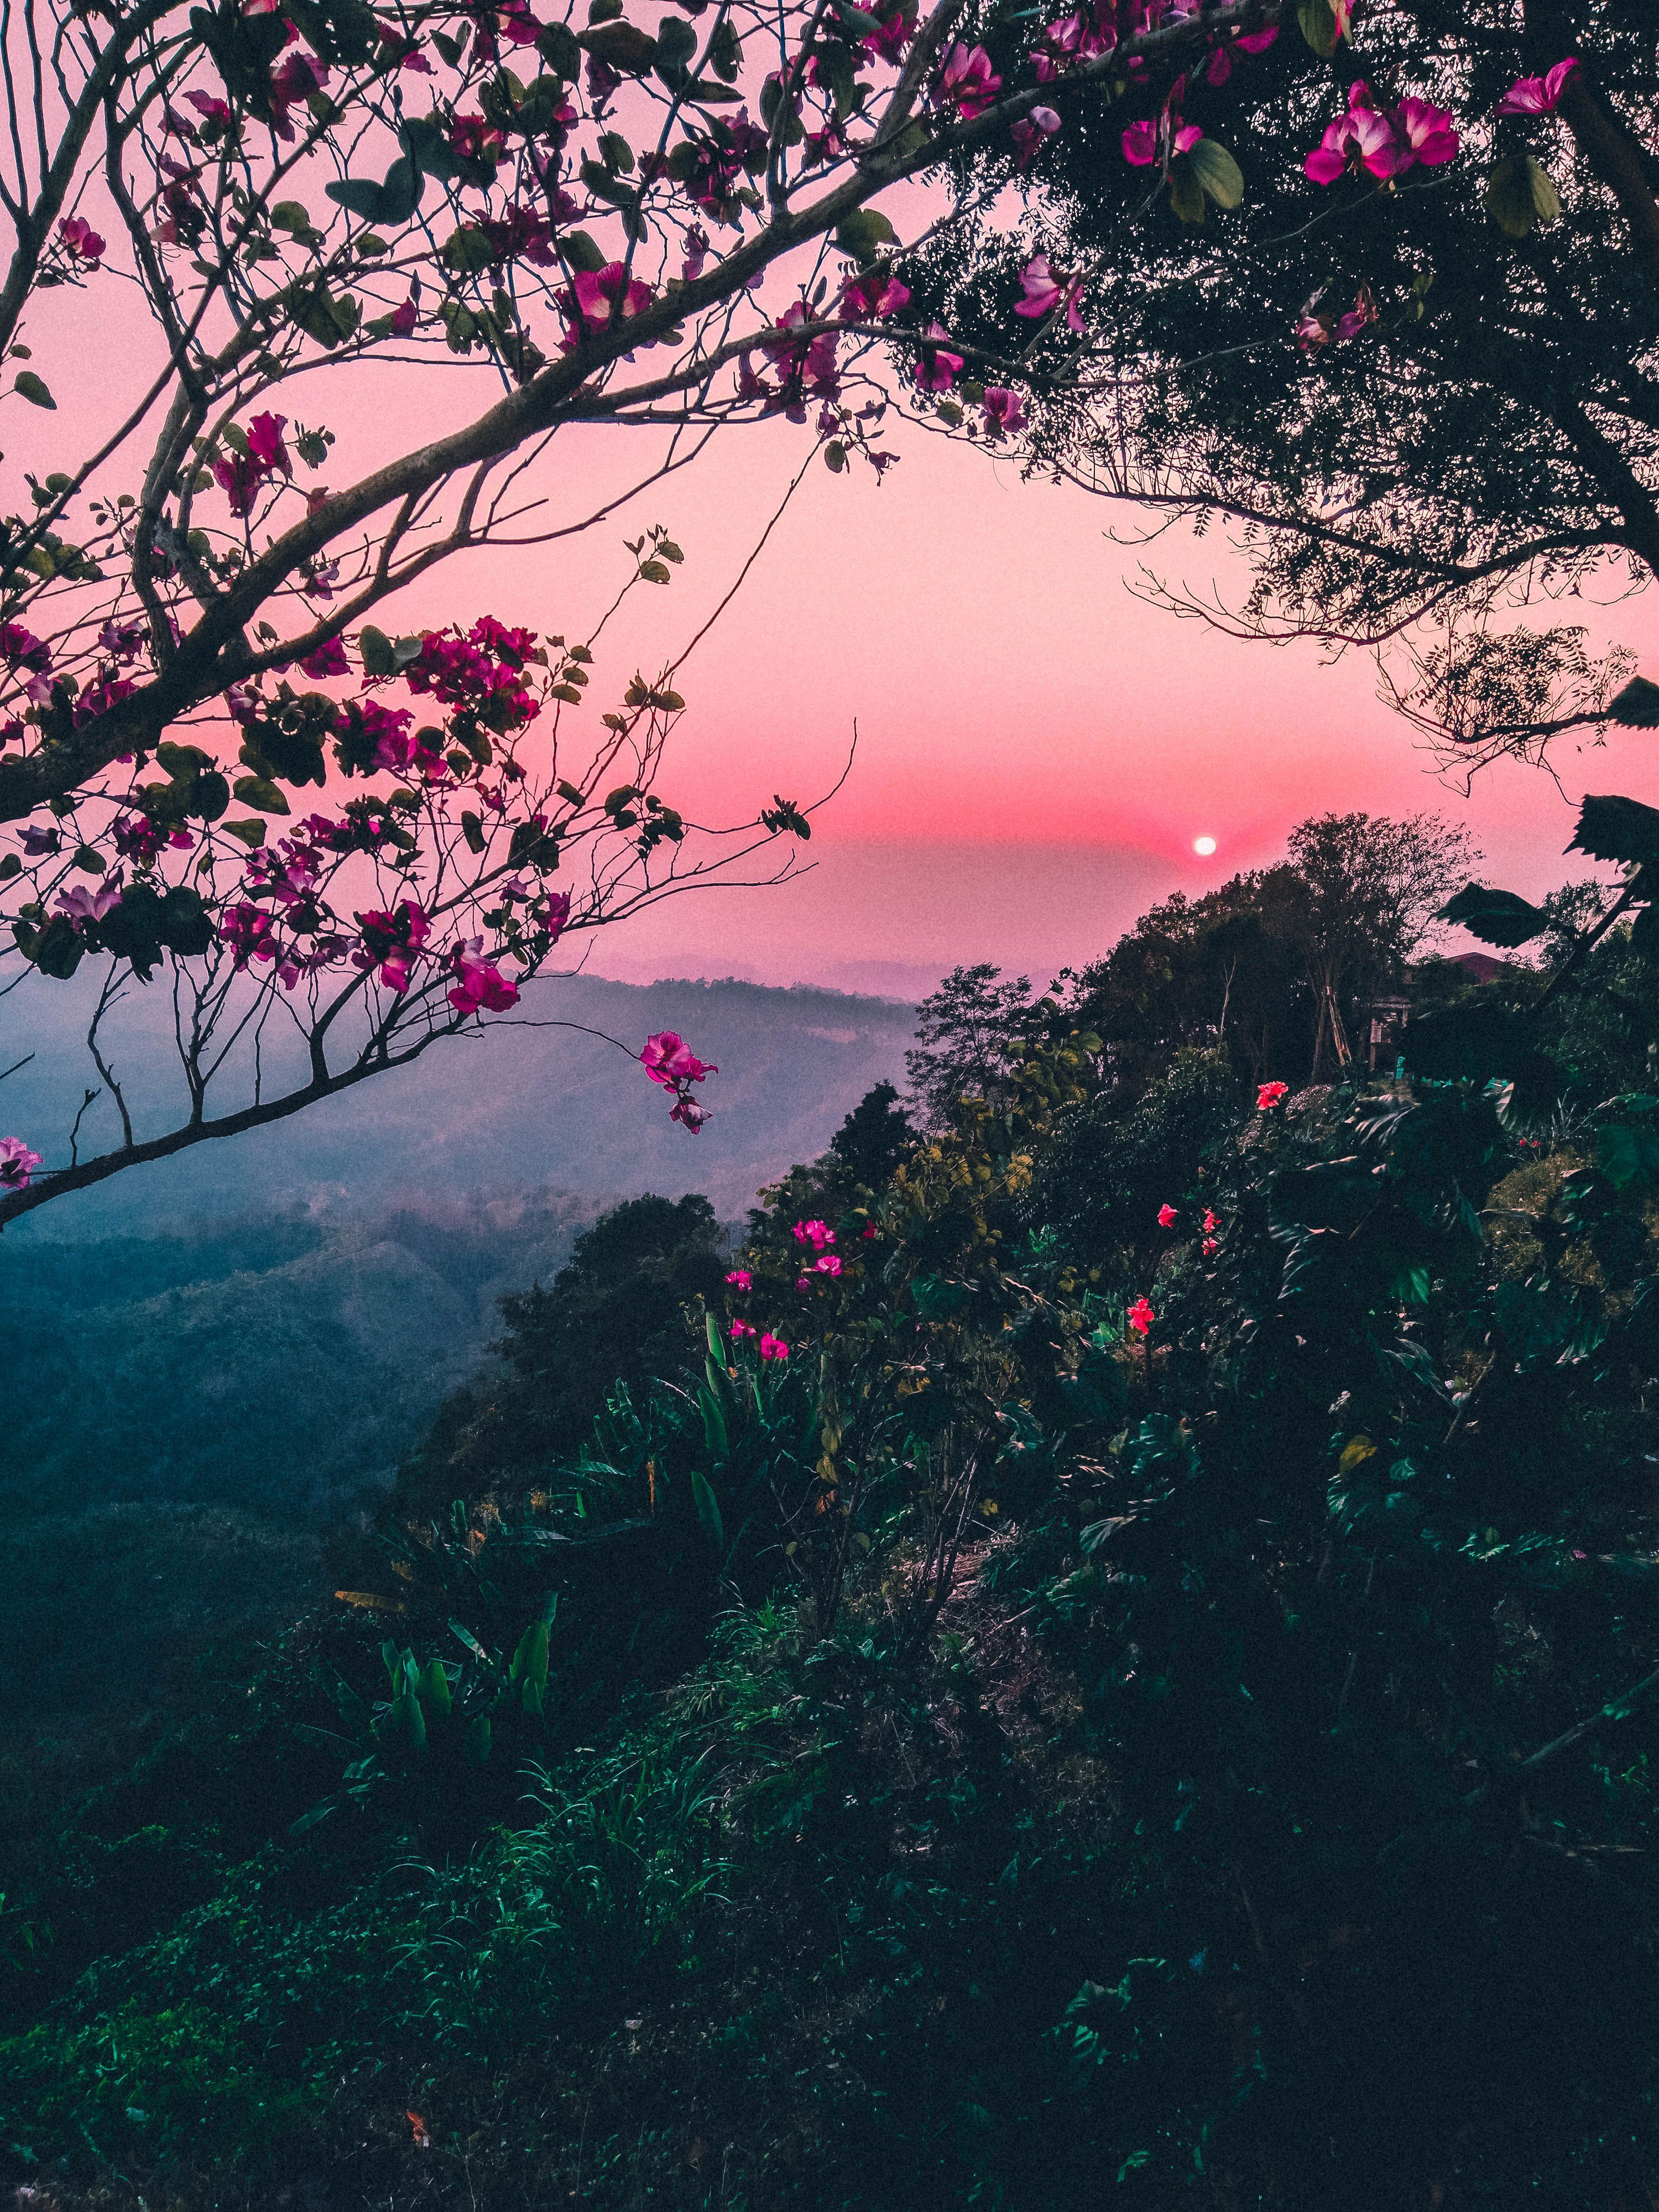 Aesthetic Photography Art Beautiful Landscapes Landscape Photography Aesthetic Backgrounds